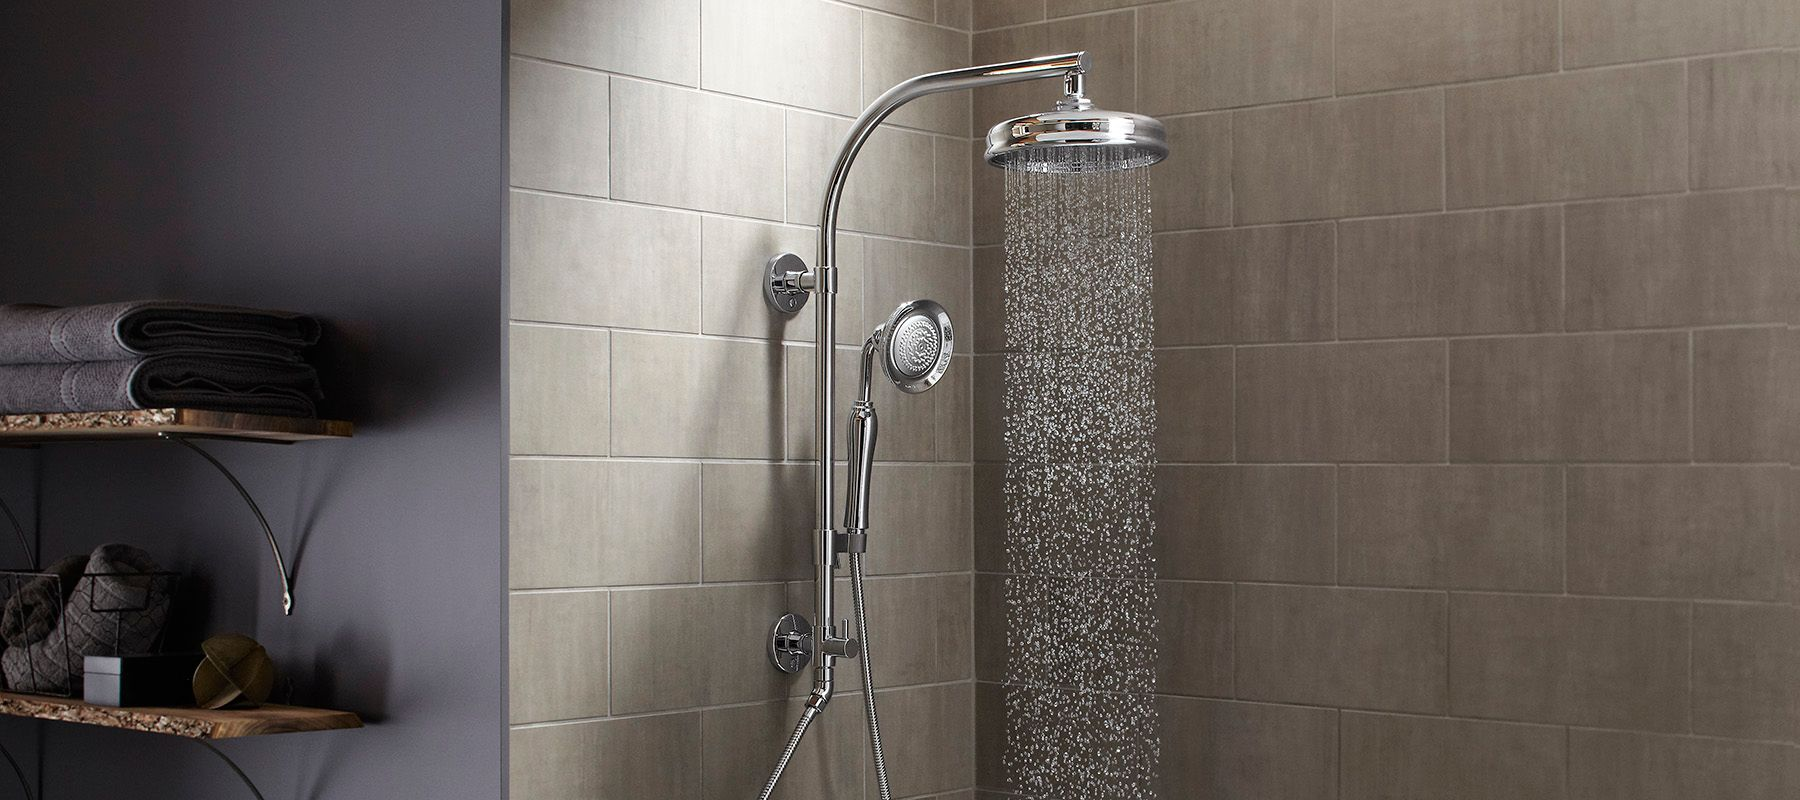 Rainheads Showerheads Handshowers Amp Bodysprays